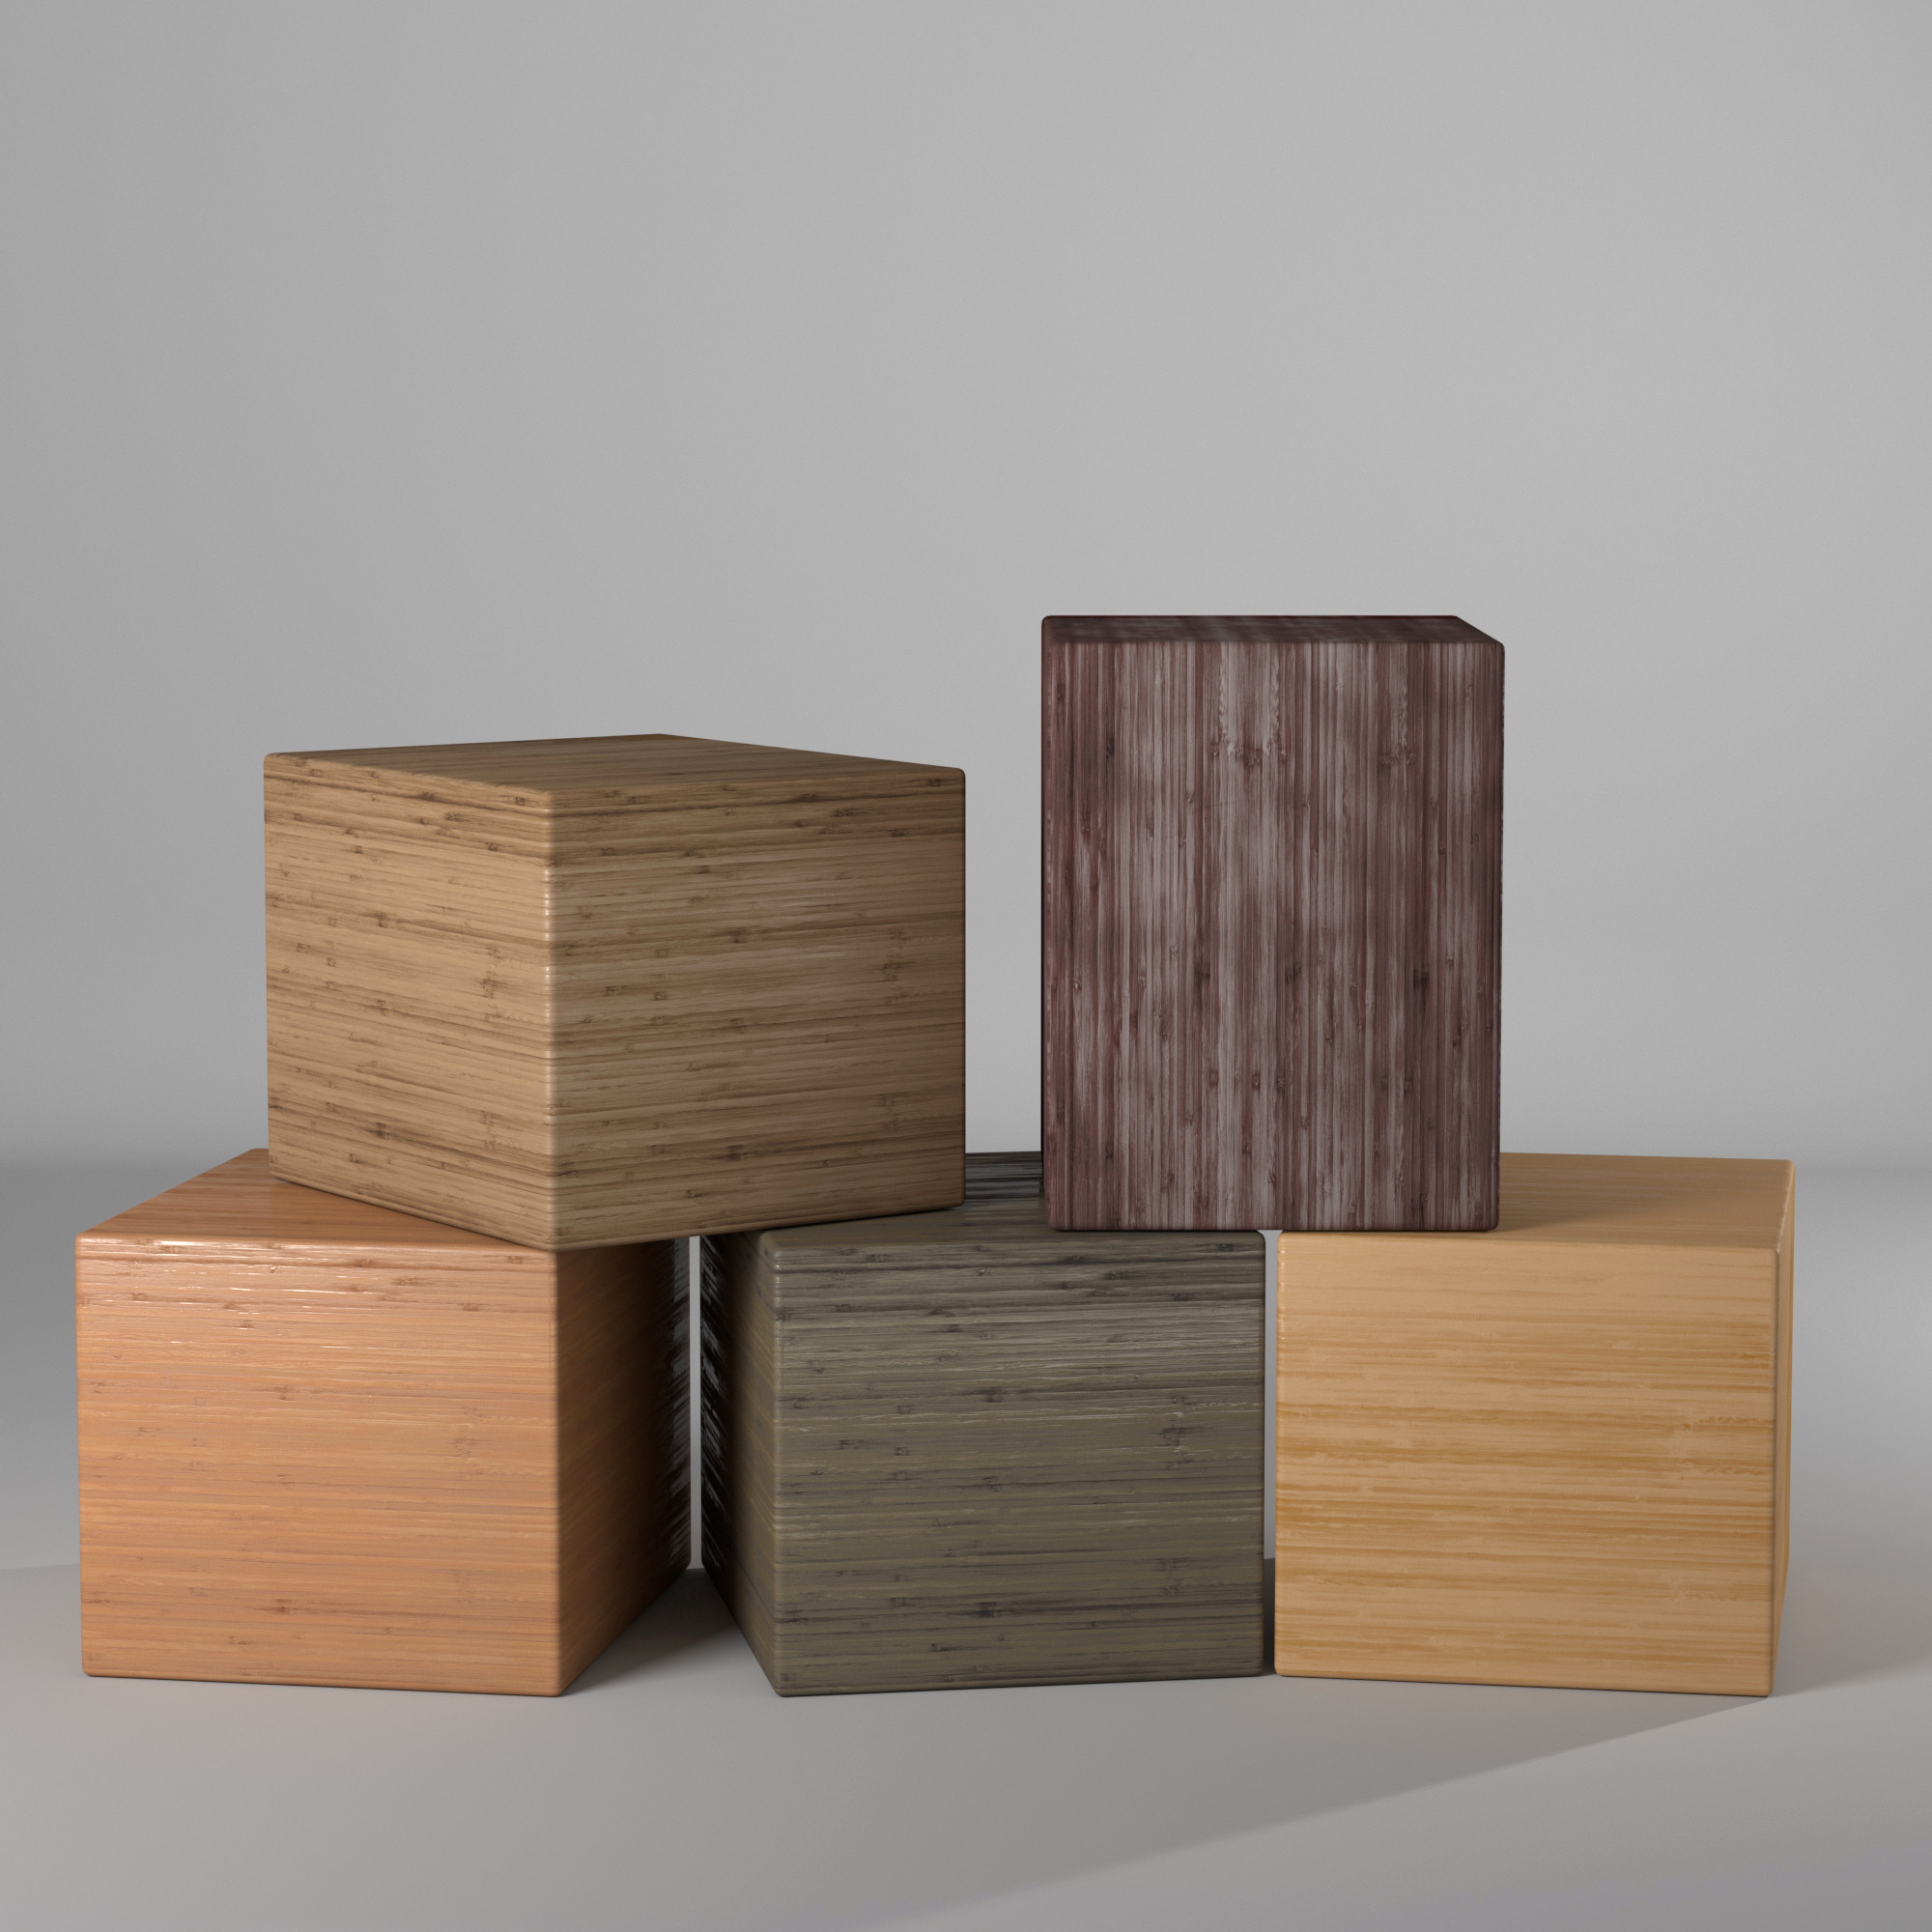 Variations of a single wood bitmap using gradient ramp and vray materials